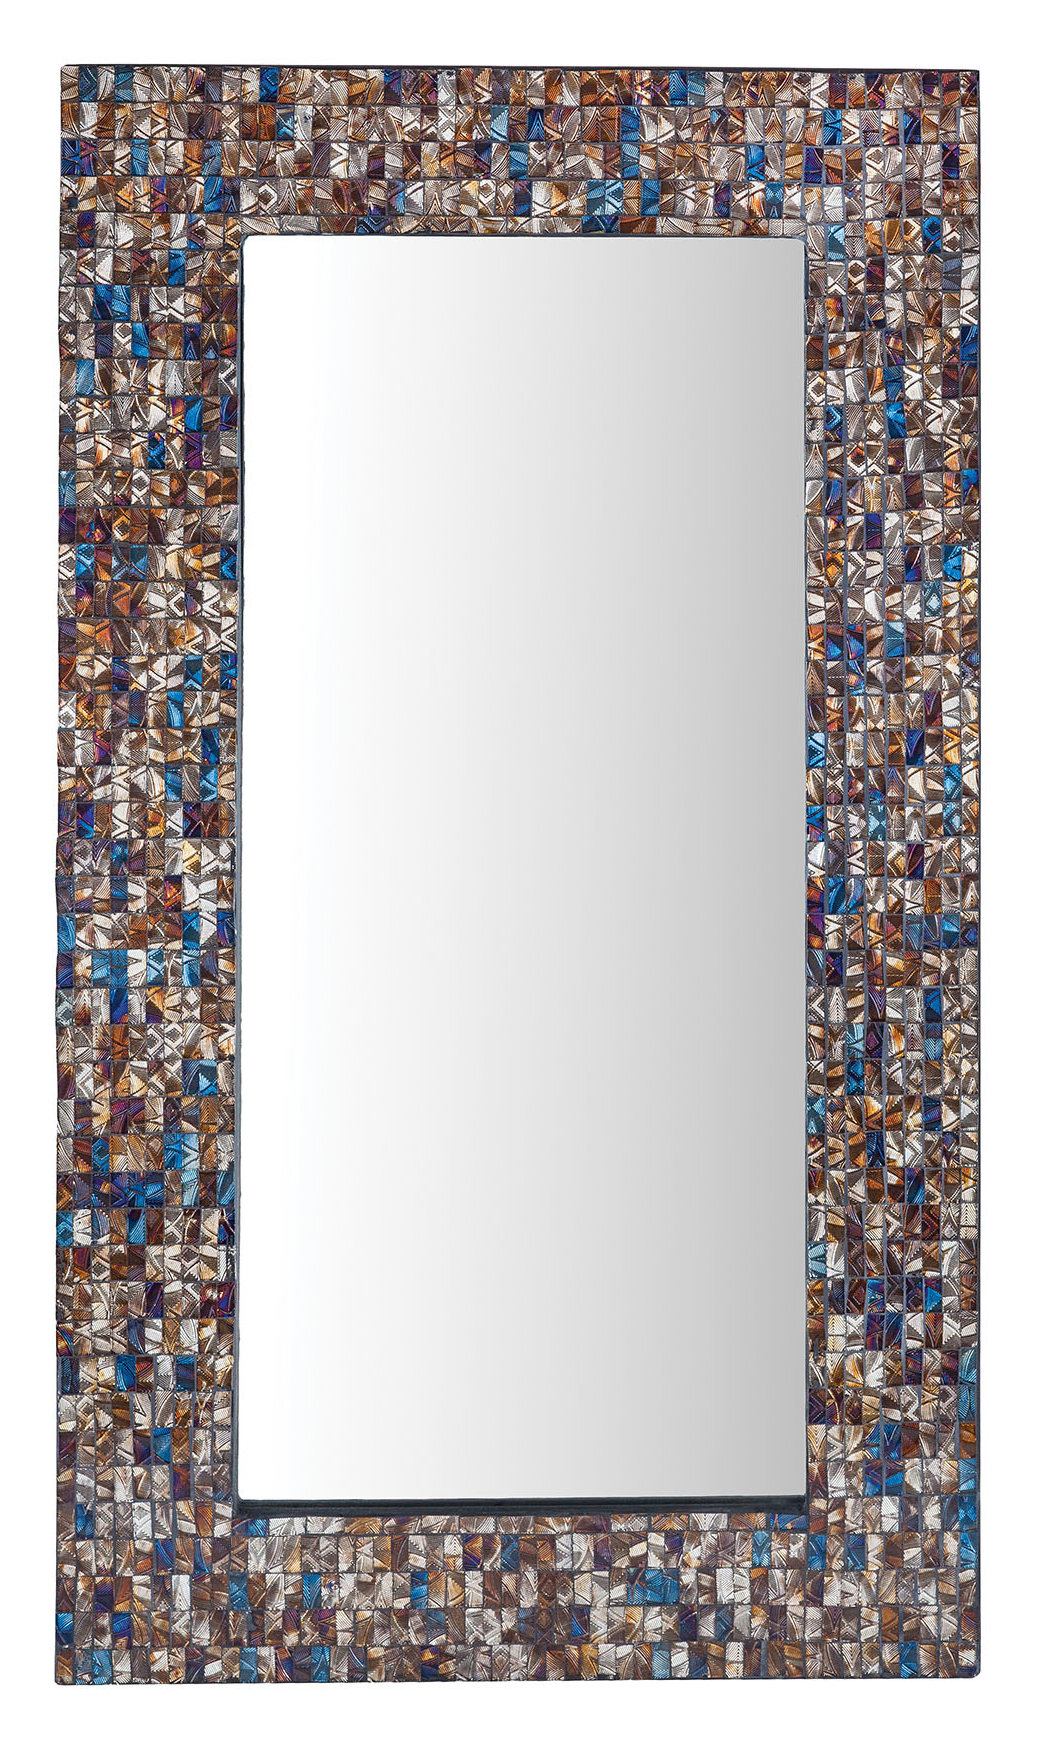 Vredenburgh Hand Inlaid Glass Accent Wall Mirror Intended For Hussain Tile Accent Wall Mirrors (Image 18 of 20)